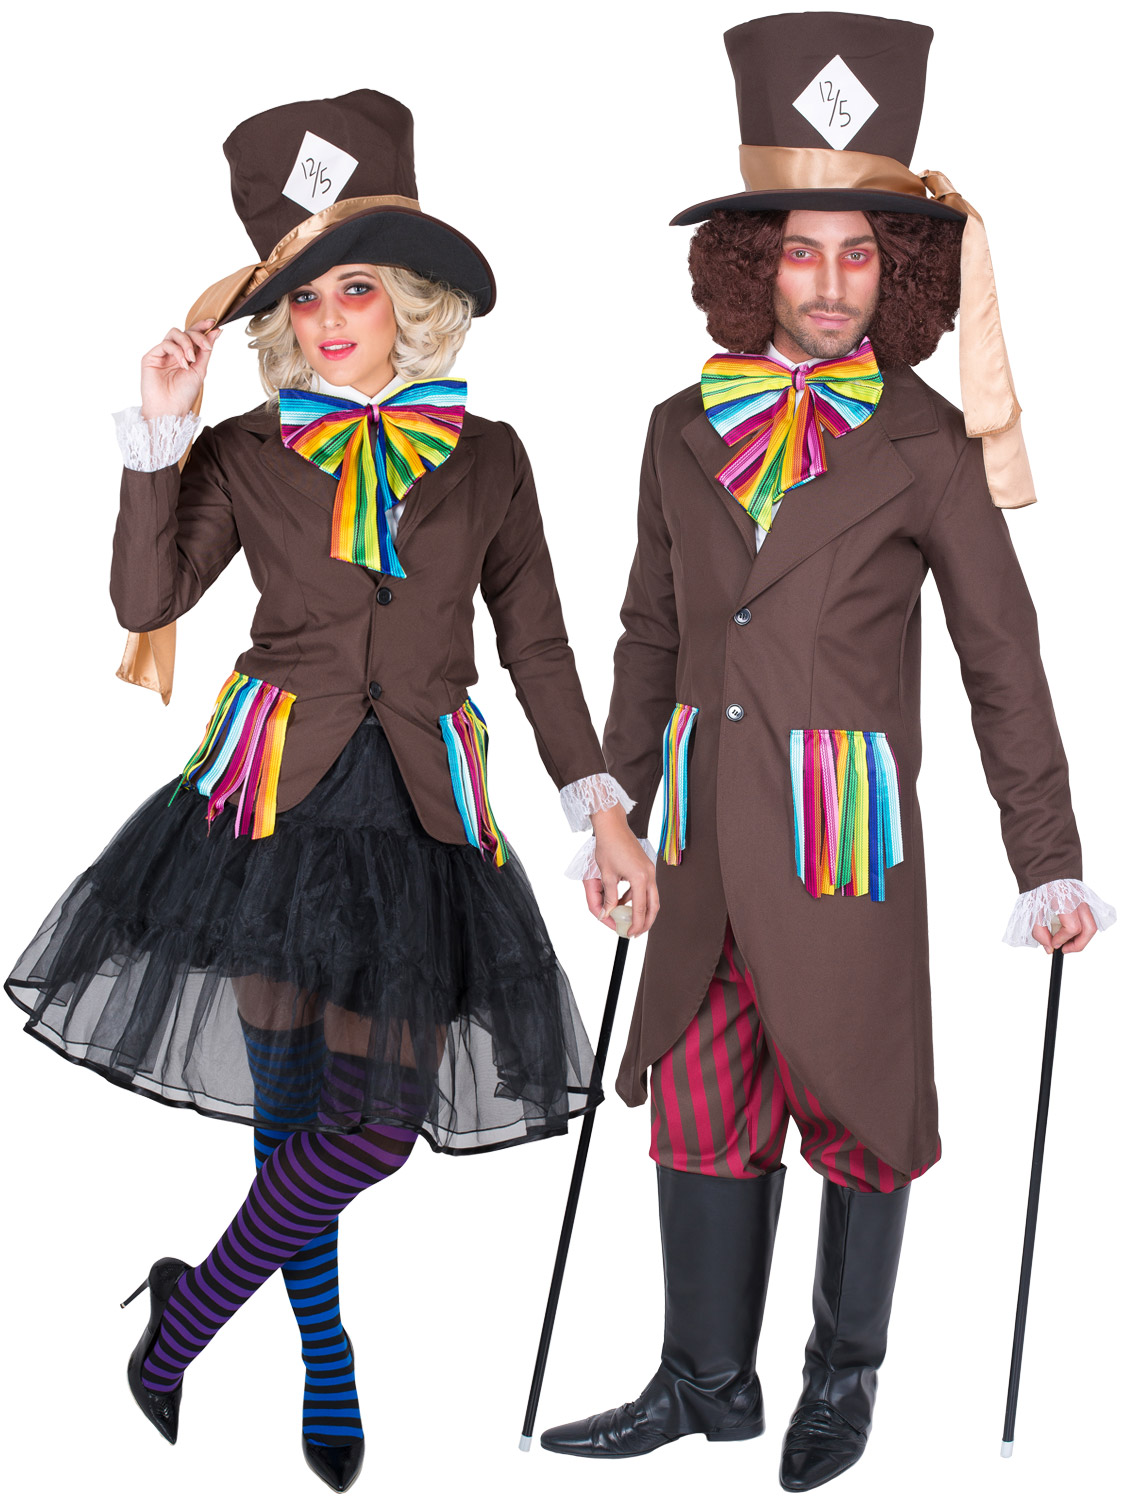 Adult mad hatter costume men ladies alice fairytale fancy dress book transform yourself into the mad hatter with either of the mens or ladies alice in wonderland themed costumes perfect for world book week day solutioingenieria Images